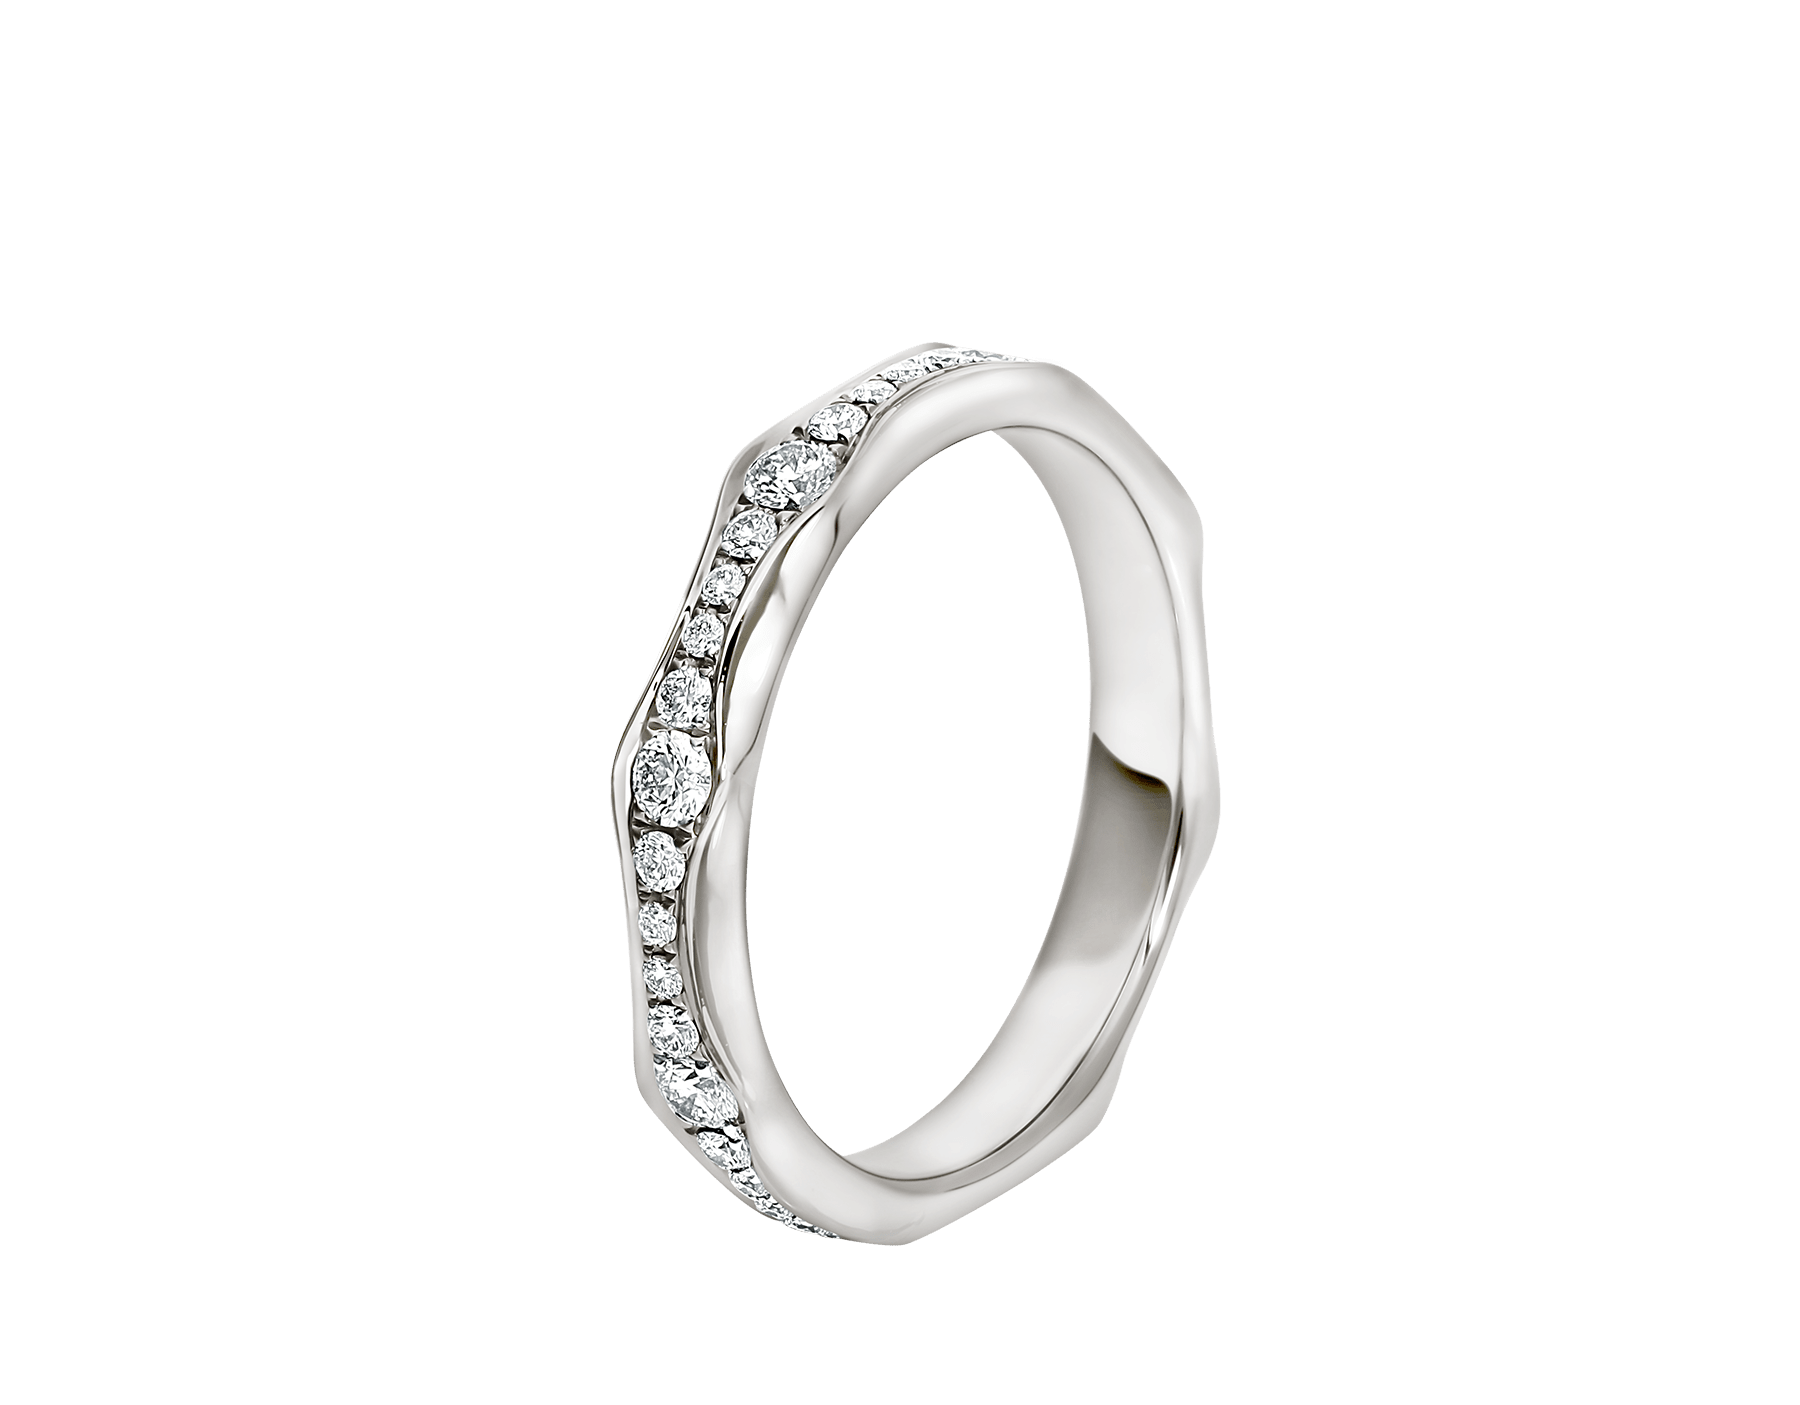 Infinito wedding band in platinum set with full pavé diamonds (0.56 ct). AN857697 image 1